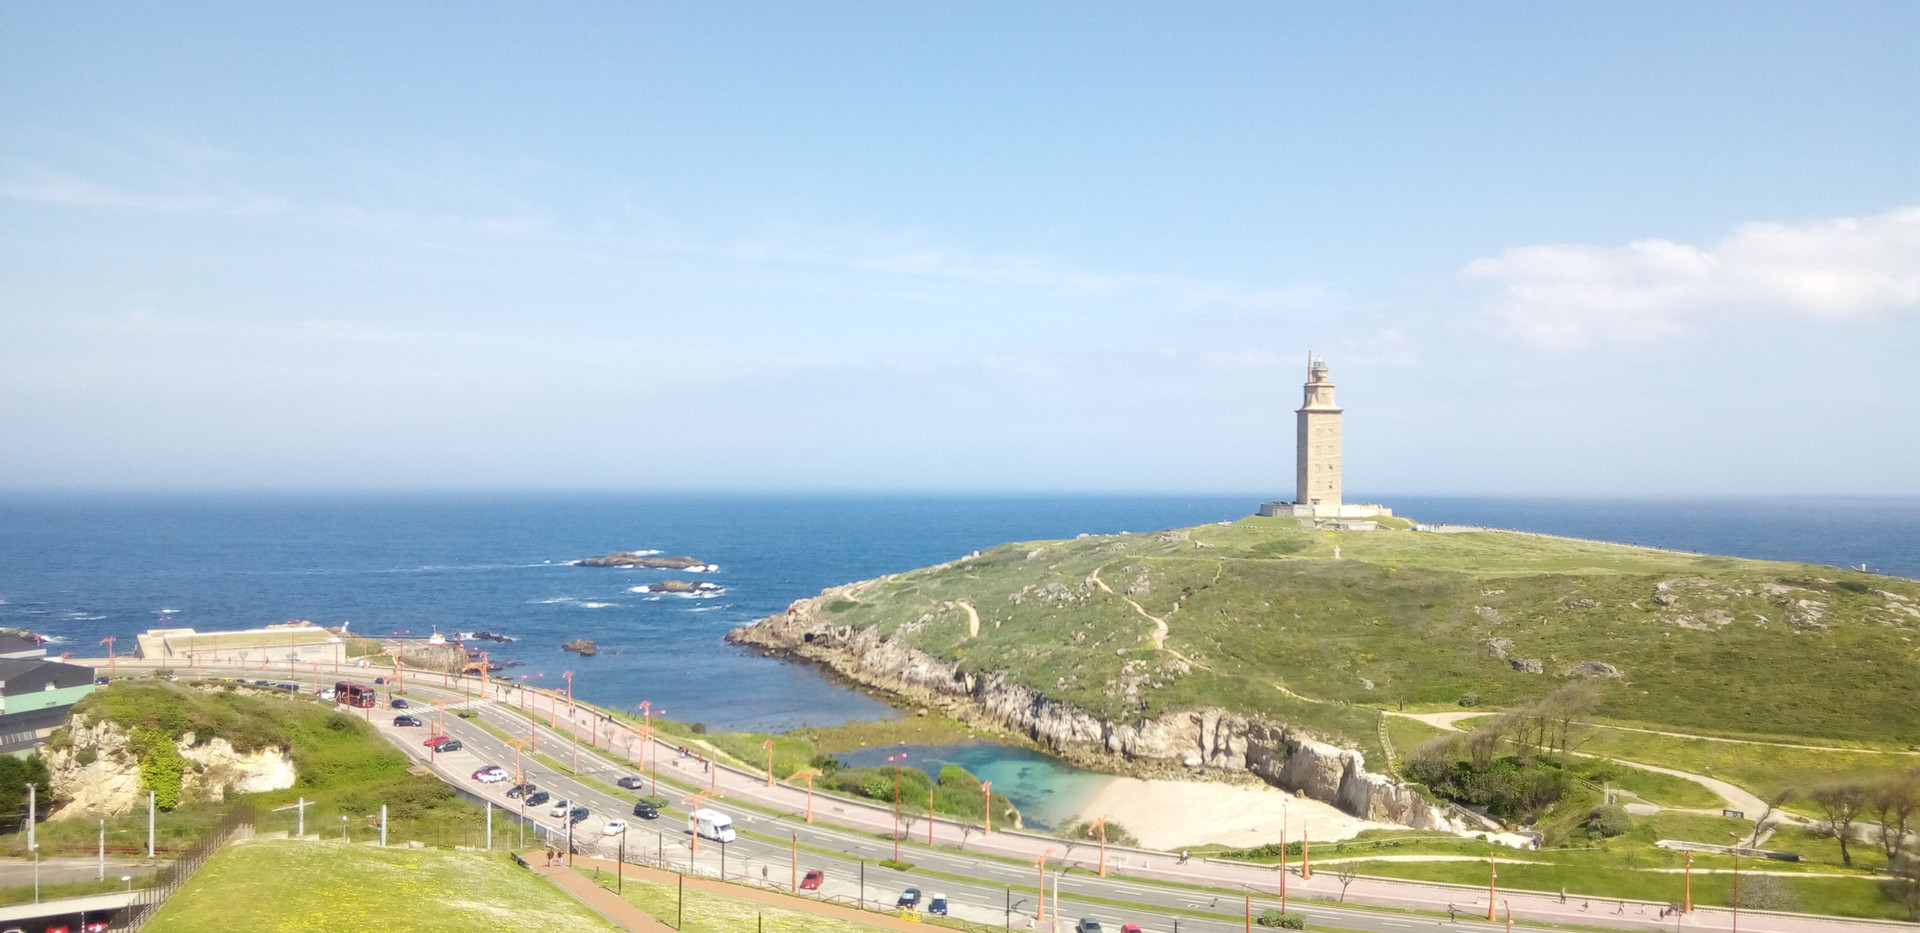 Torre de Hércules and park